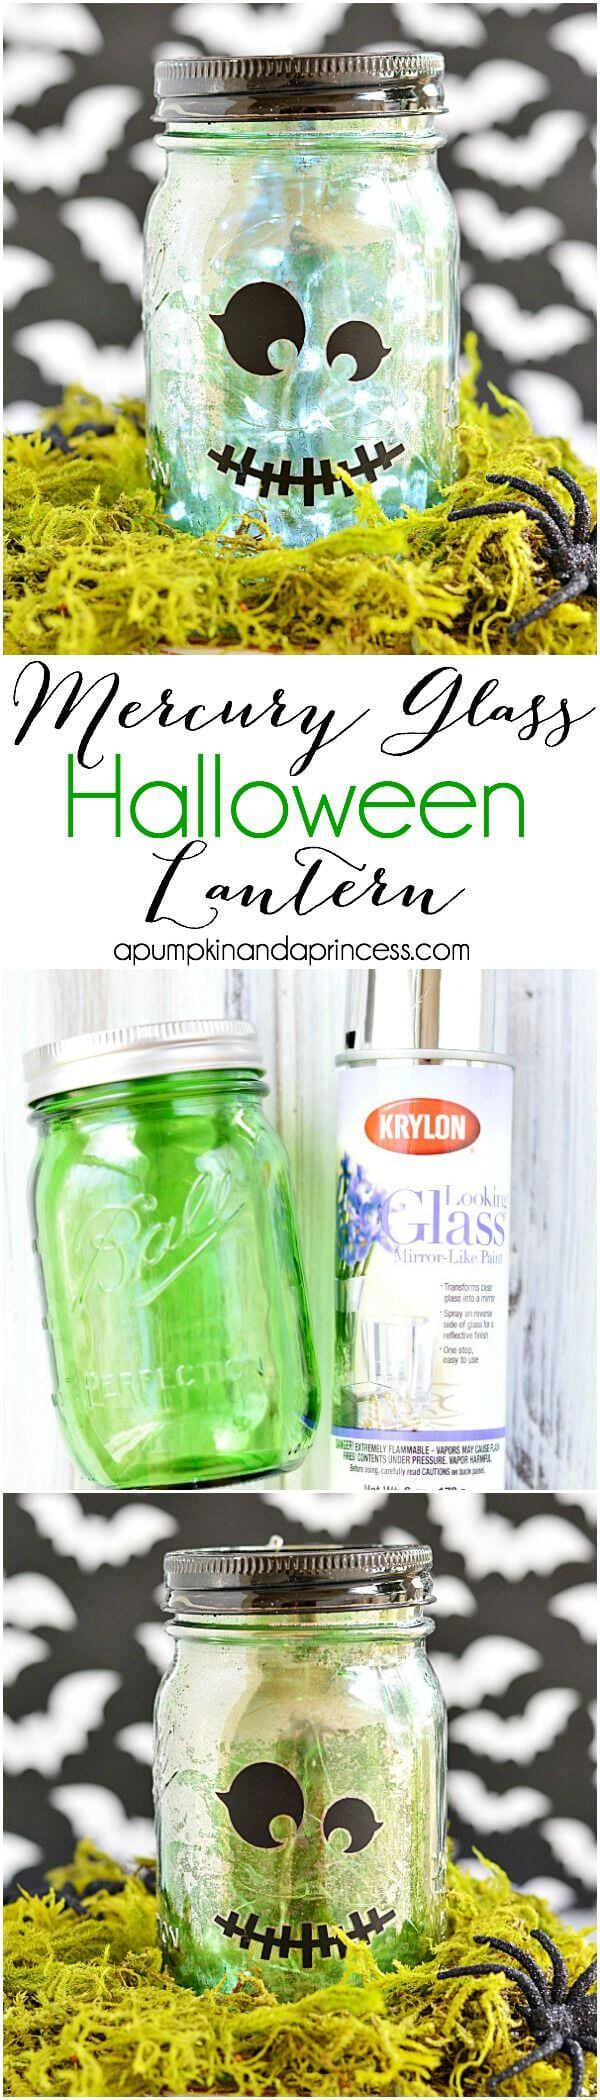 DIY Mason Jar Halloween Crafts: Mercury Glass Frankenstein Lantern